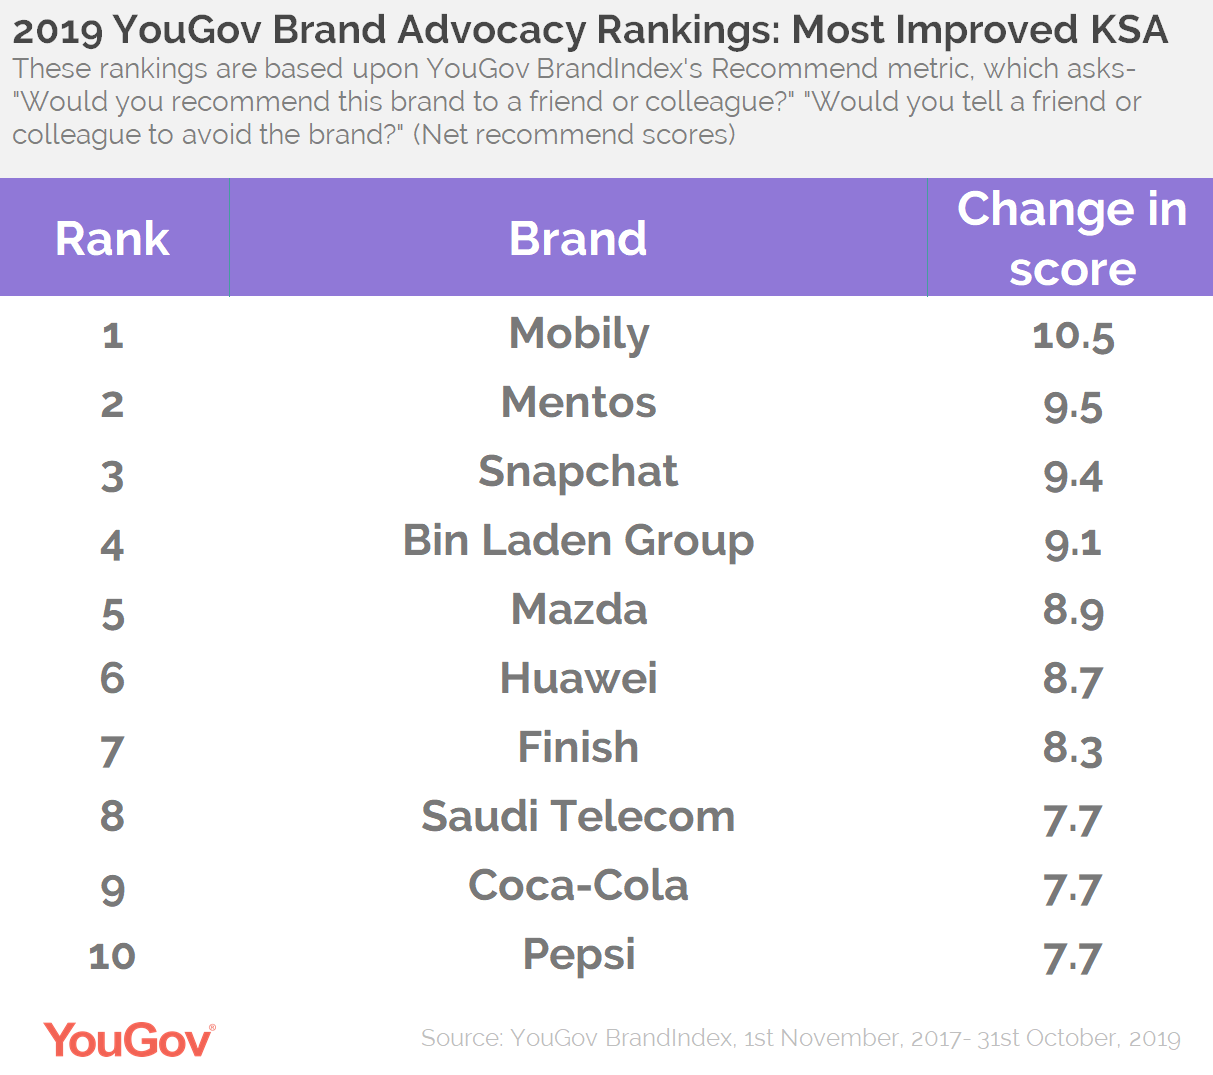 2019 Brand Advocacy Rankings- Most Improved KSA